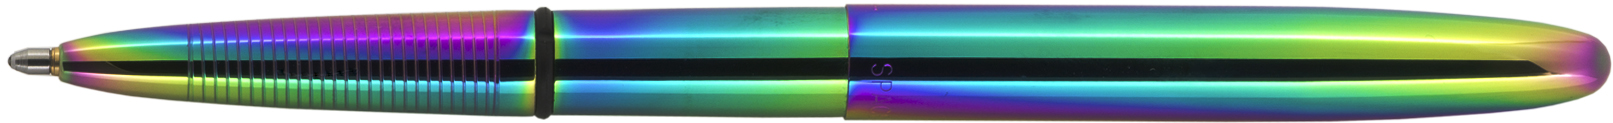 400RB - FISHER Rainbow Titanium Nitride Bullet Space Pen Blue Velour Gift Boxed